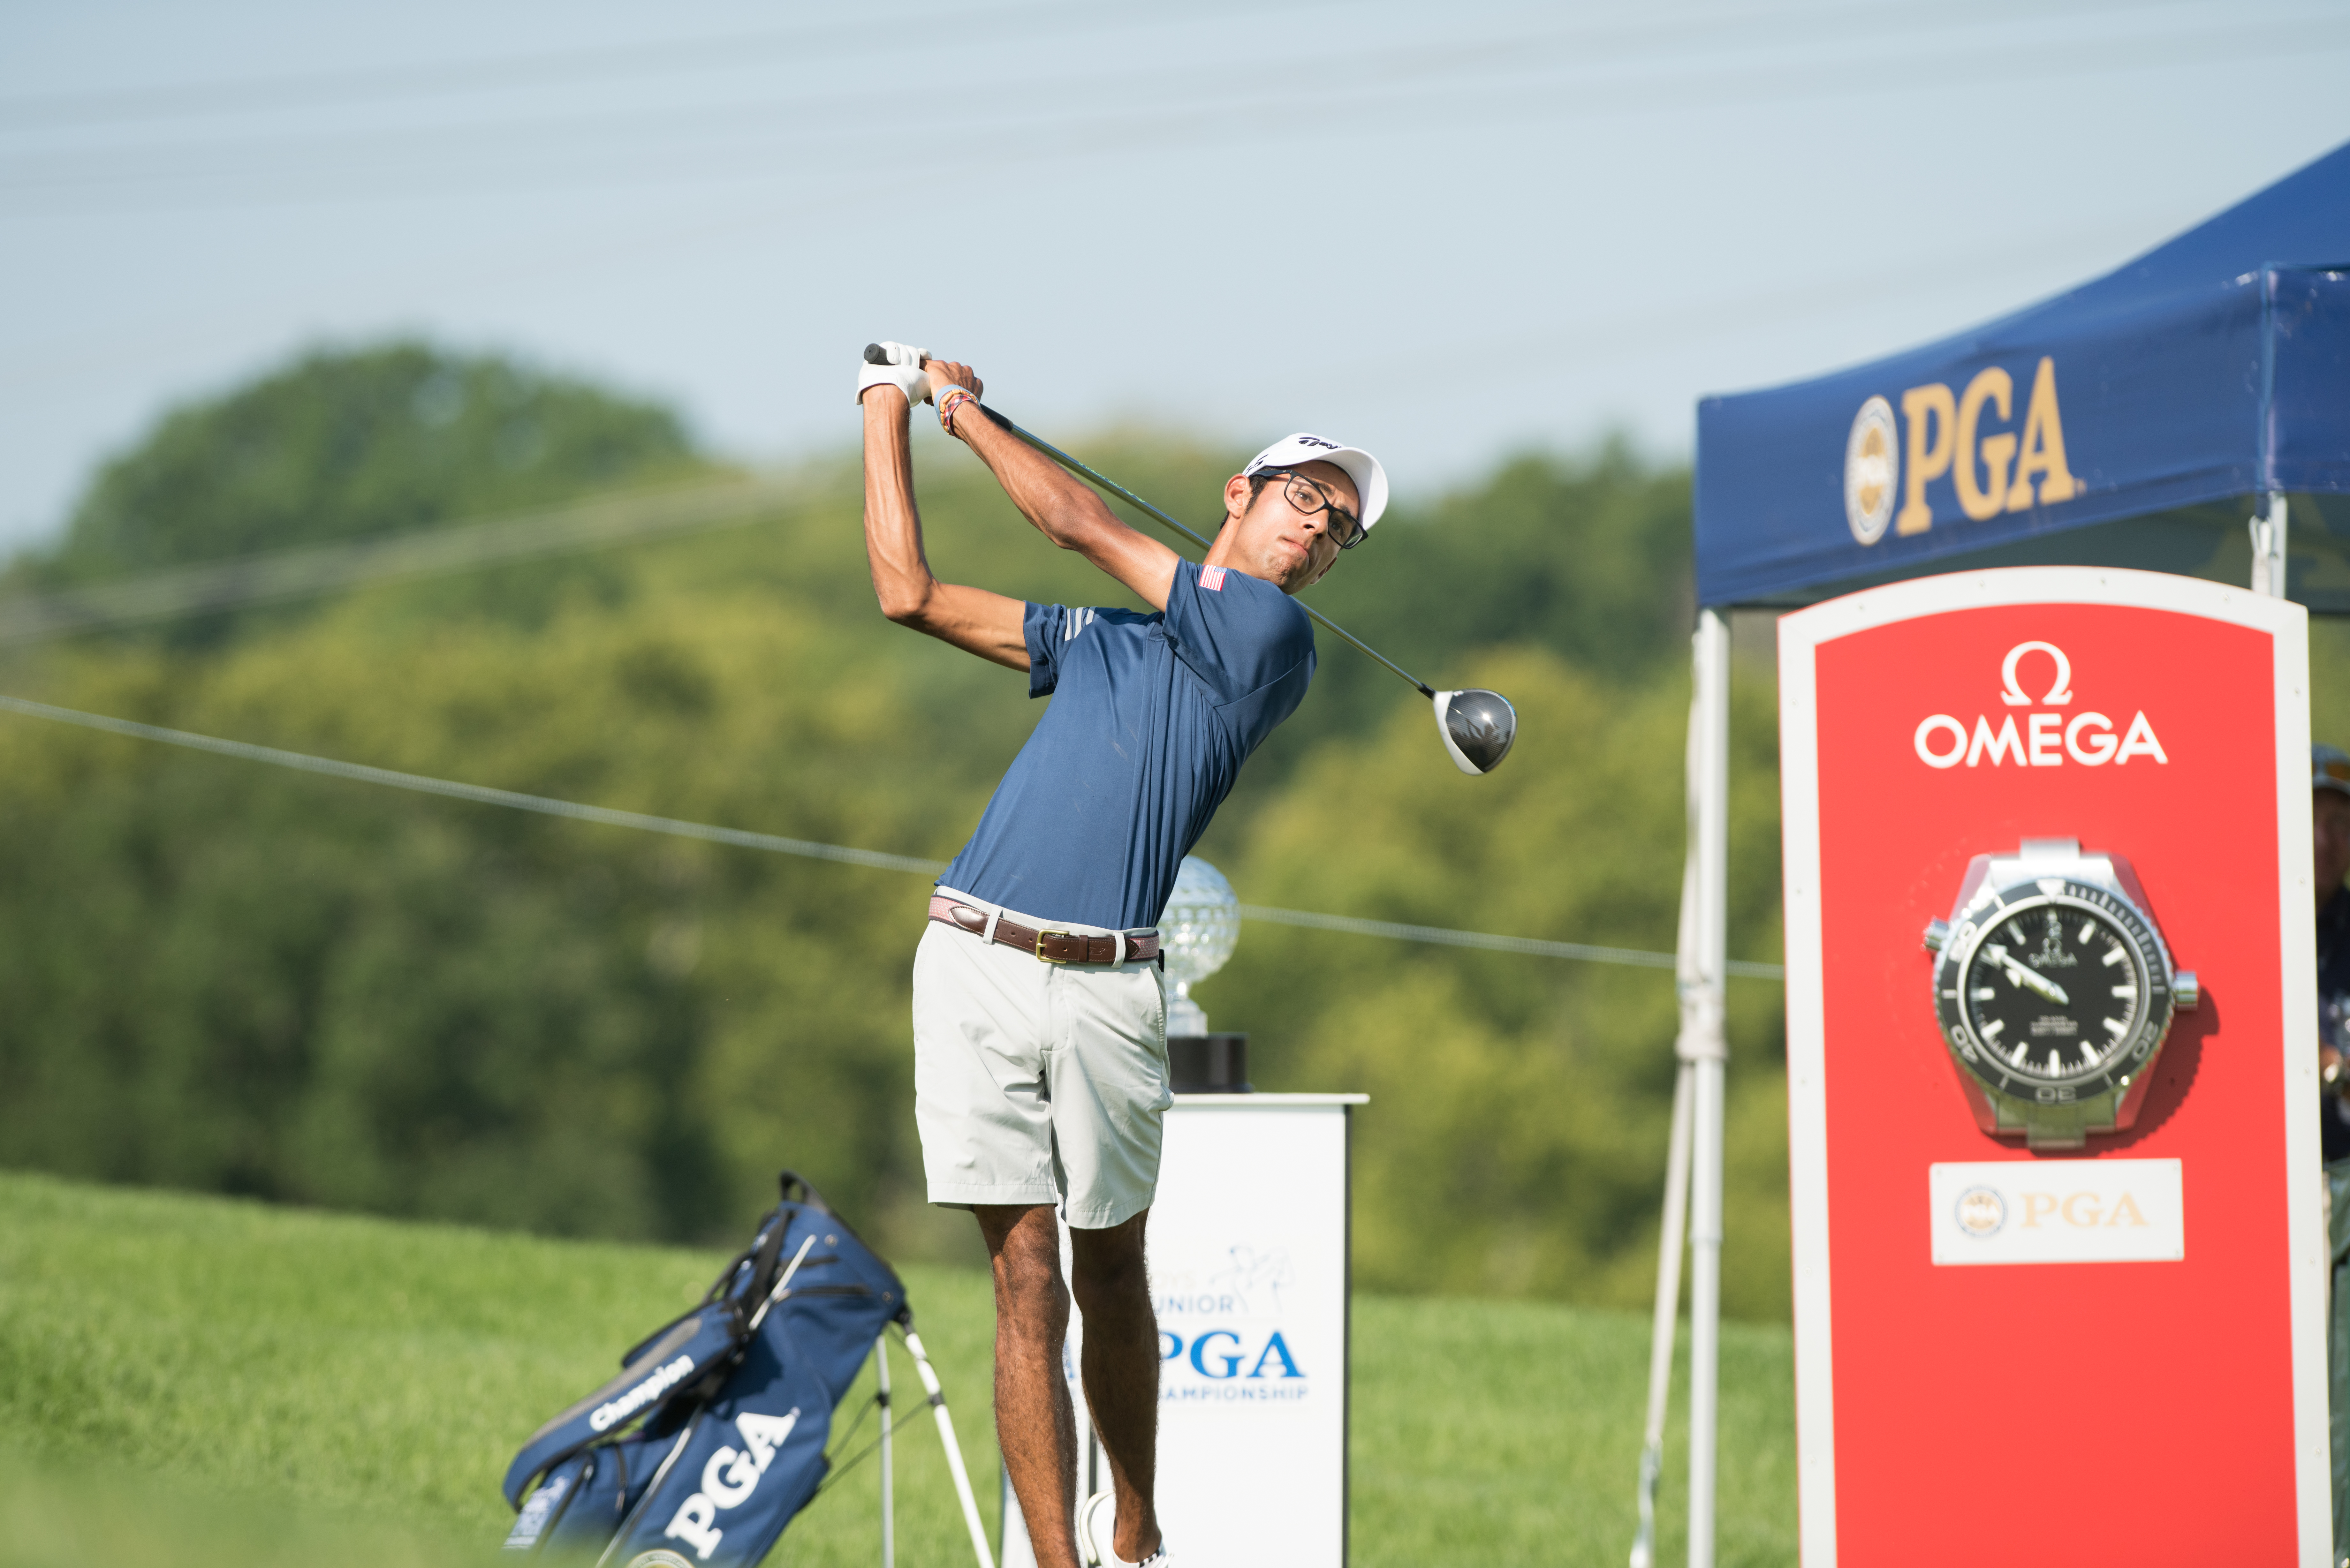 Results - 43rd Boys Junior PGA Championship